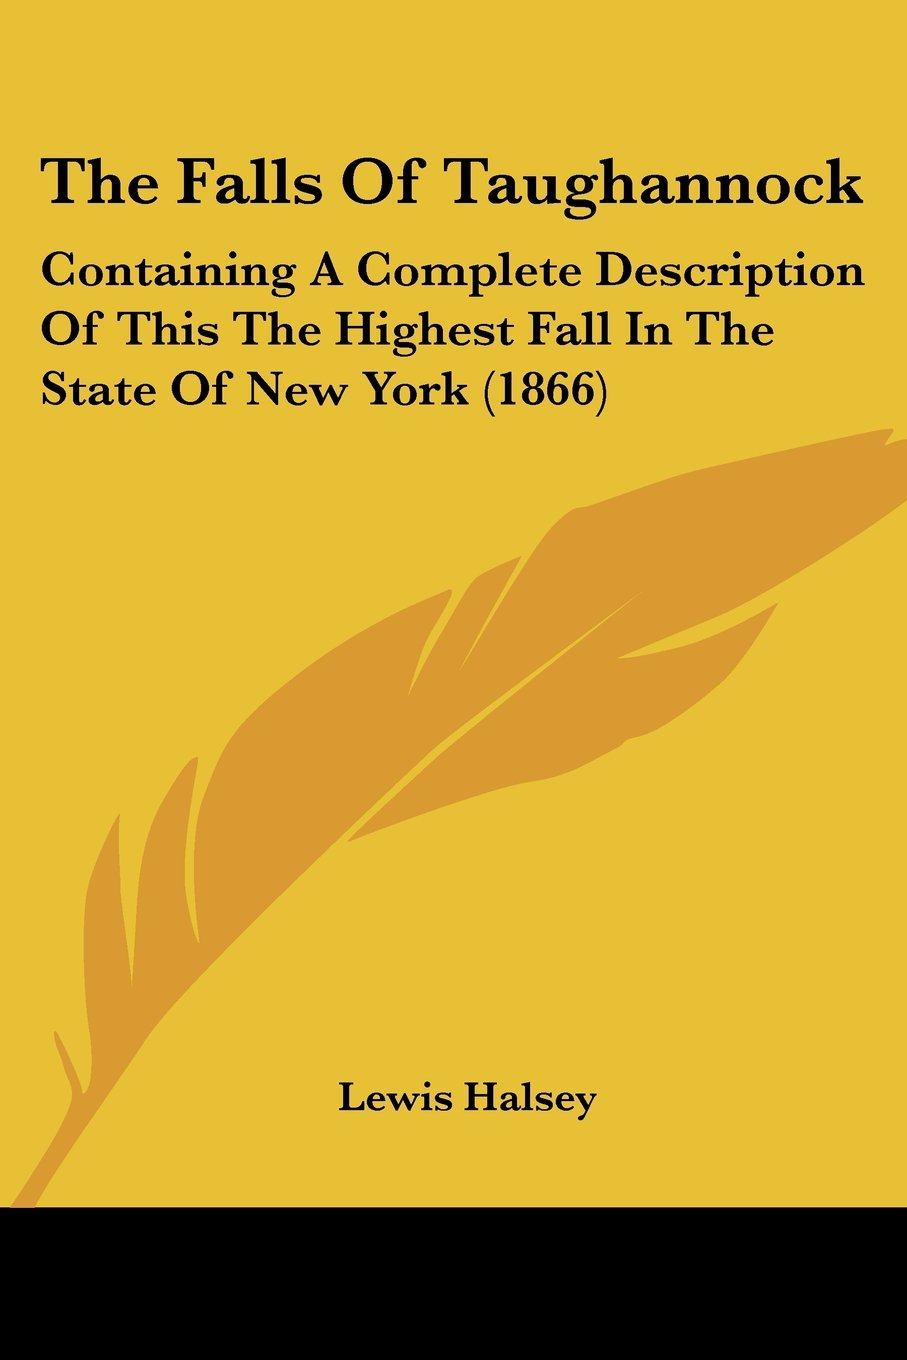 Download The Falls Of Taughannock: Containing A Complete Description Of This The Highest Fall In The State Of New York (1866) pdf epub